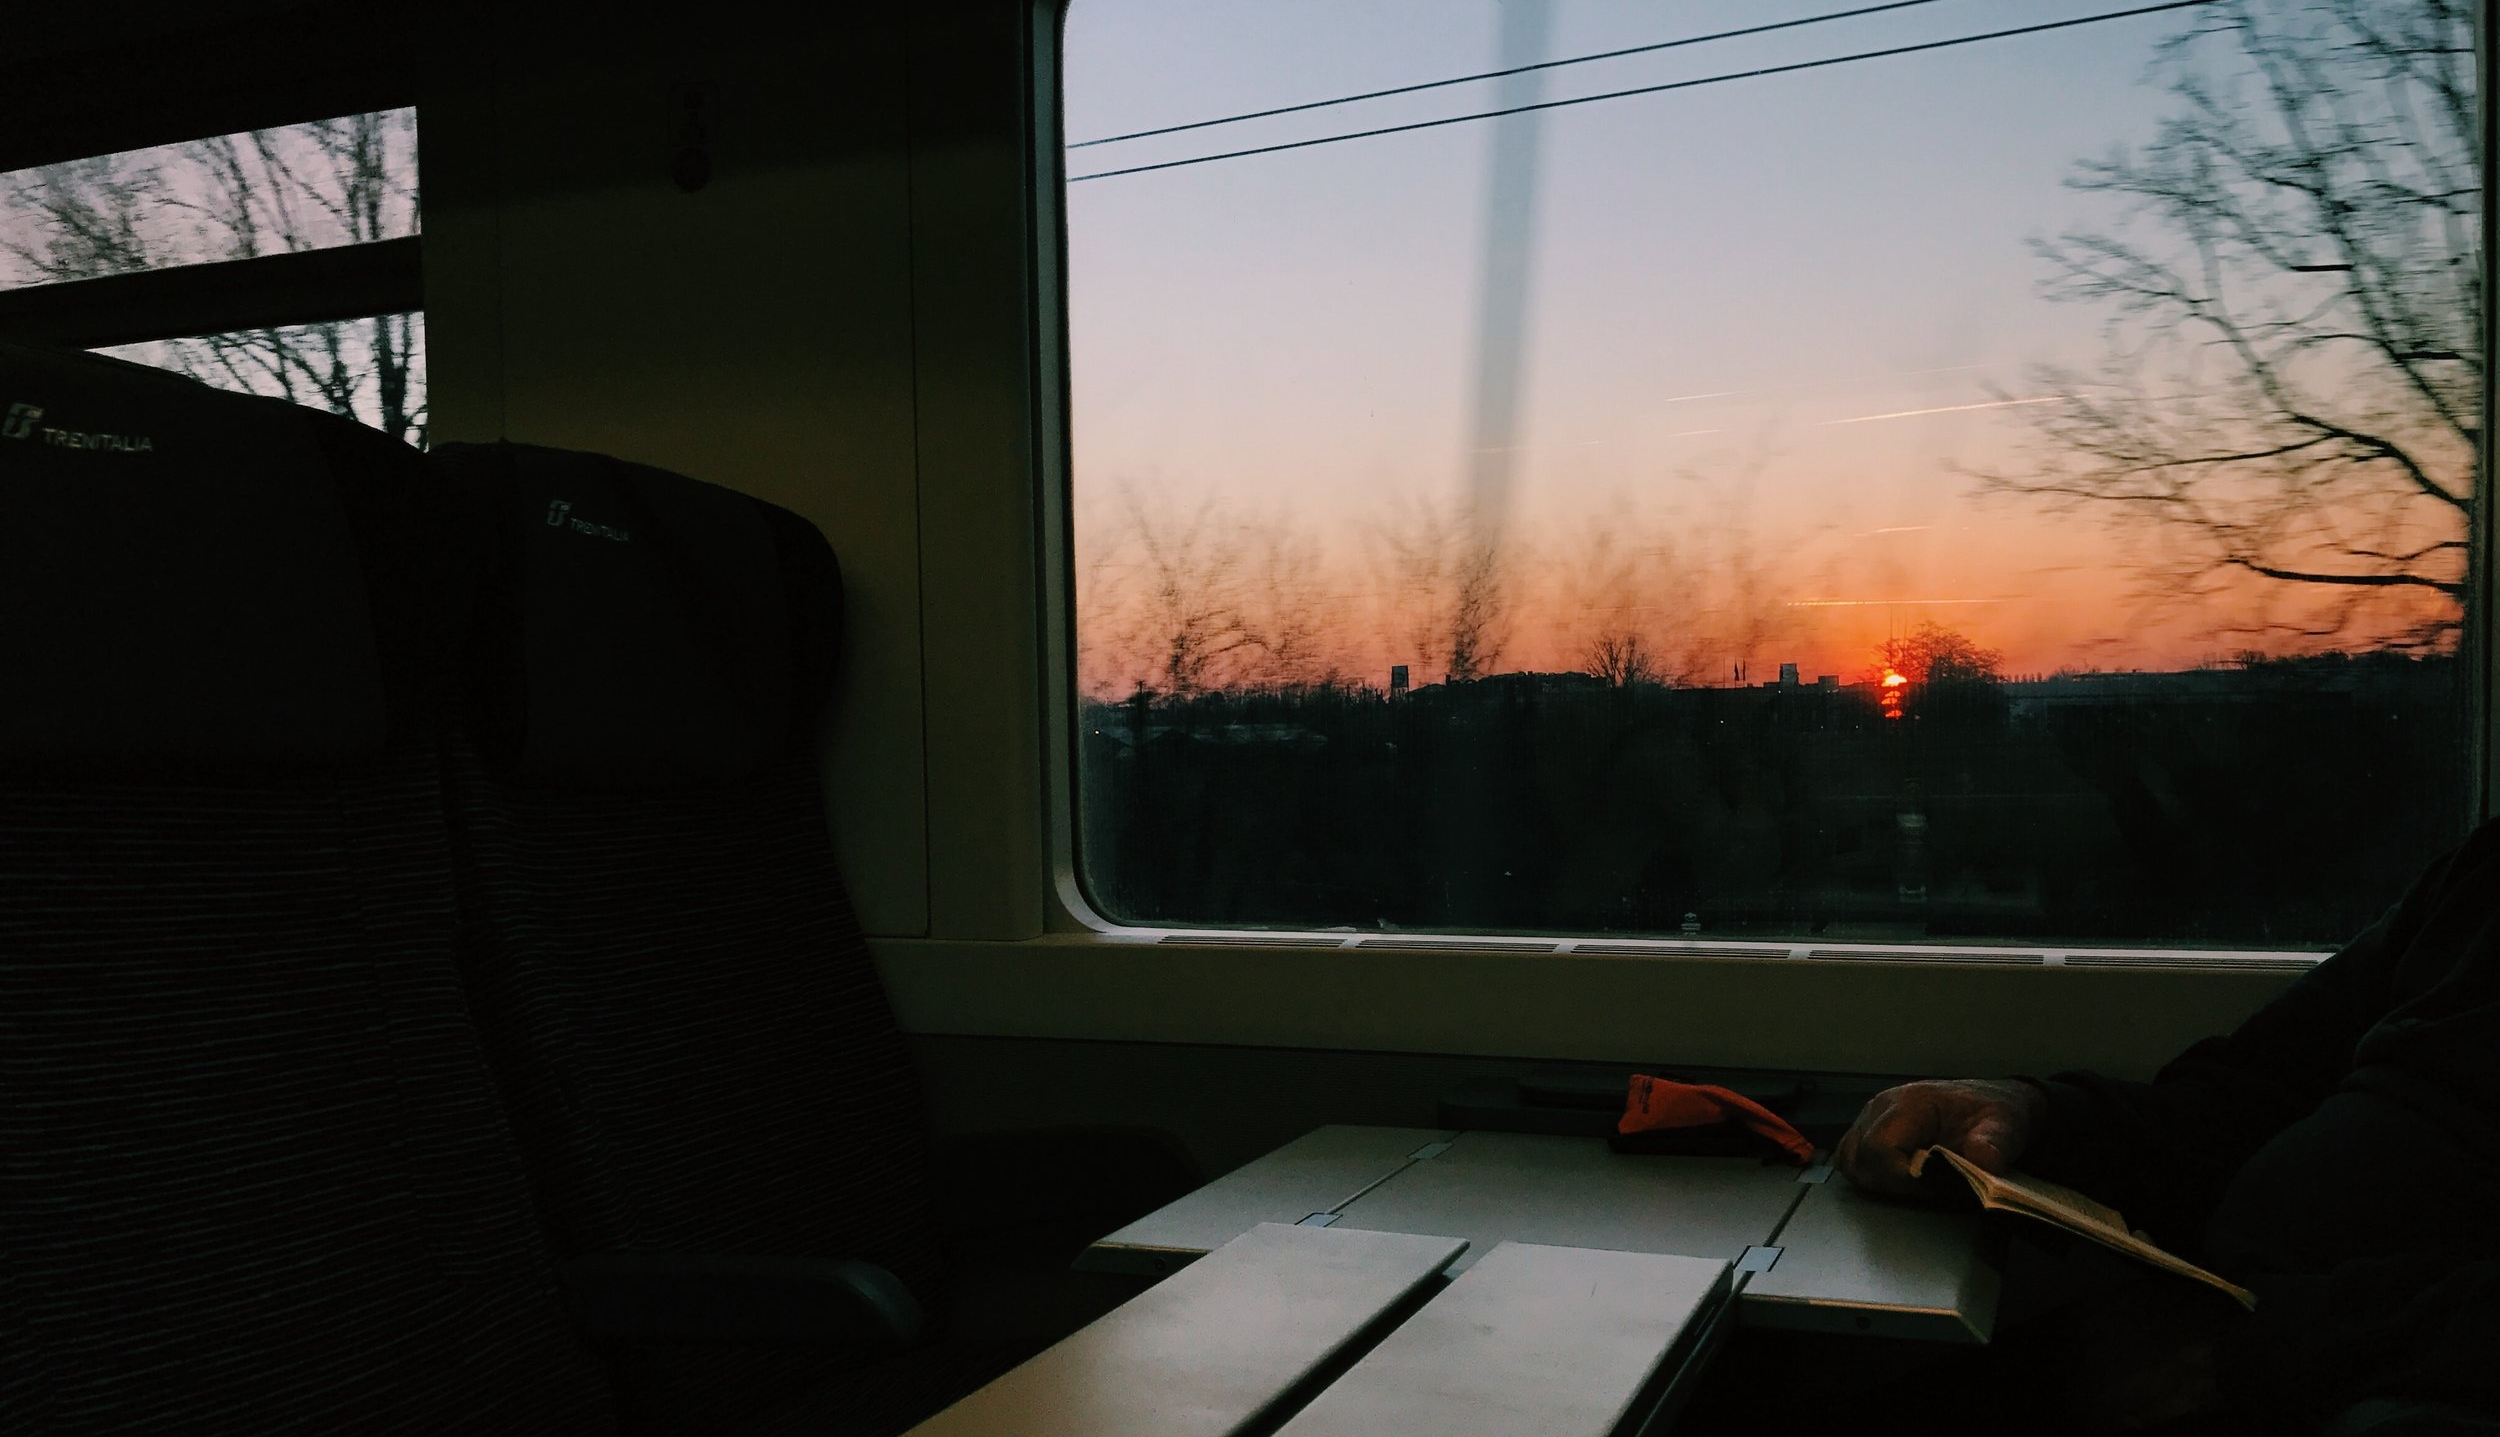 6AM Train from Milan - La Spezia